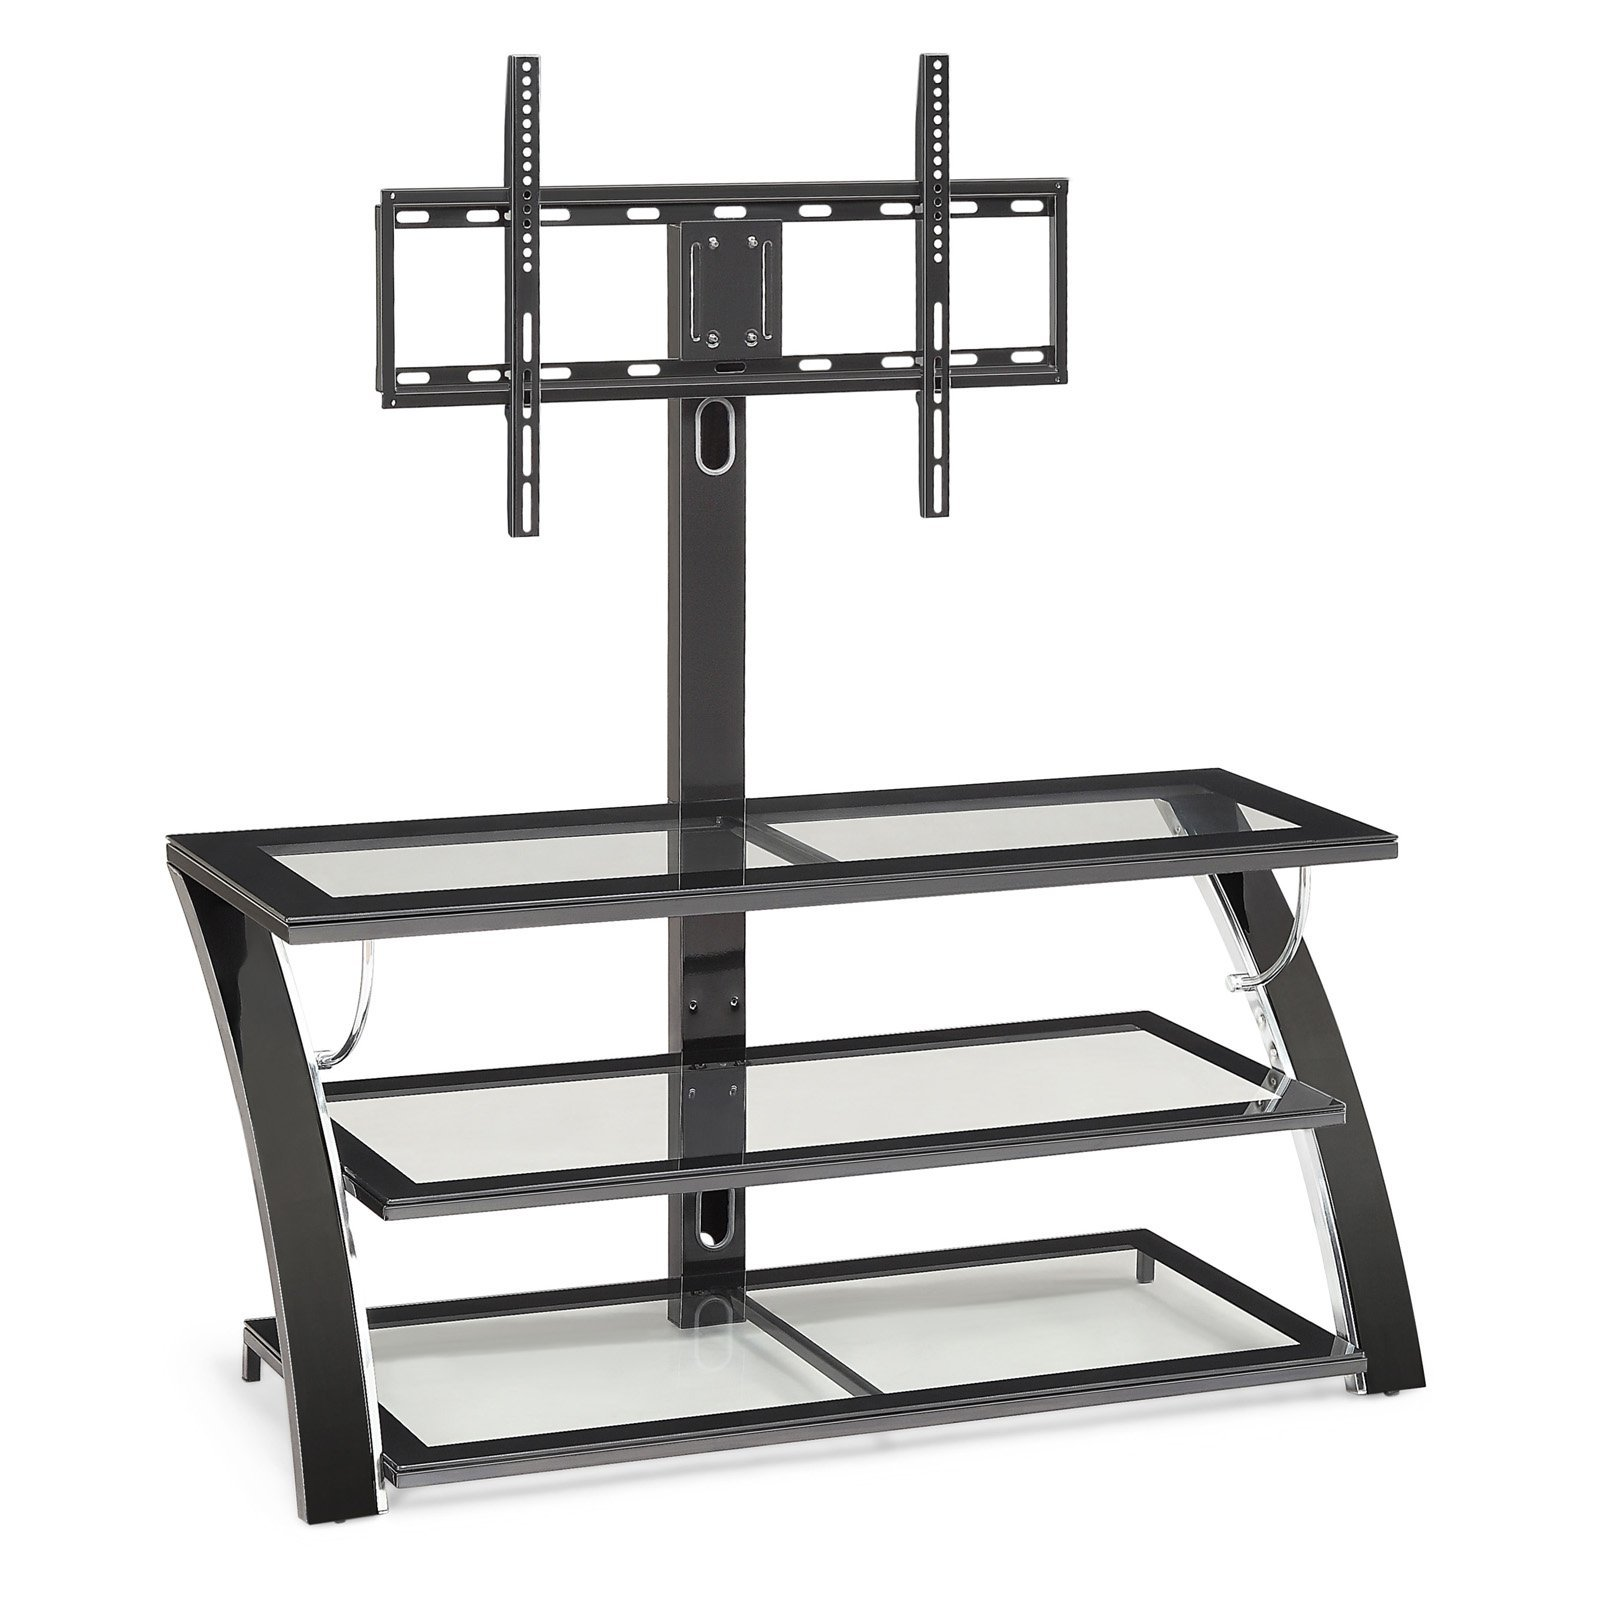 50 in. TV Stand Made of Durable Metal and Glass Sleek Chrome and Black Finish 3 Shelves for Storage or Display Cable Management System by eCom Fortune